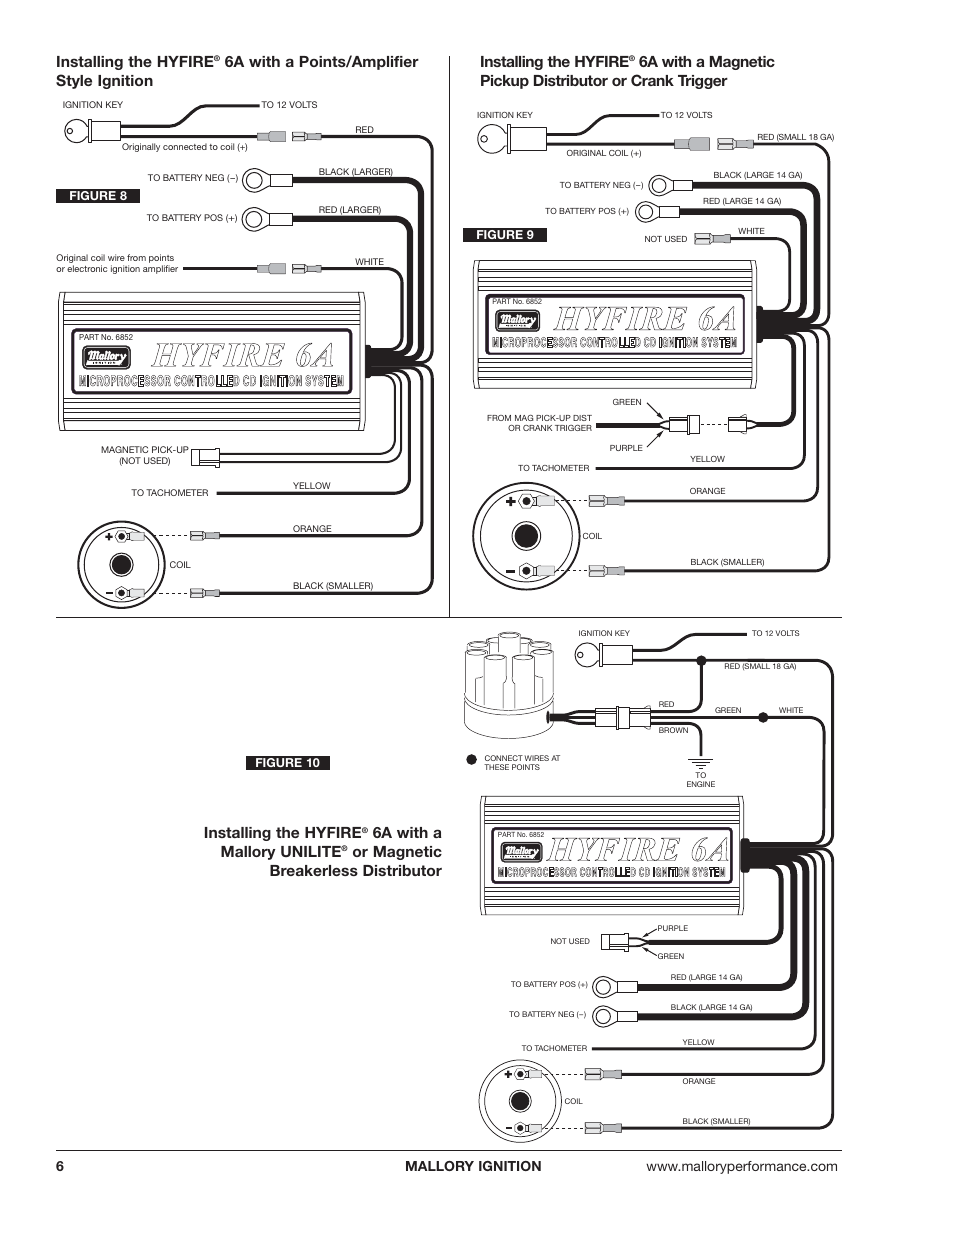 mallory hyfire6a wiring diagram mallory unilite wiring diagram mallory ignition mallory hyfire 6a and 6al series ...